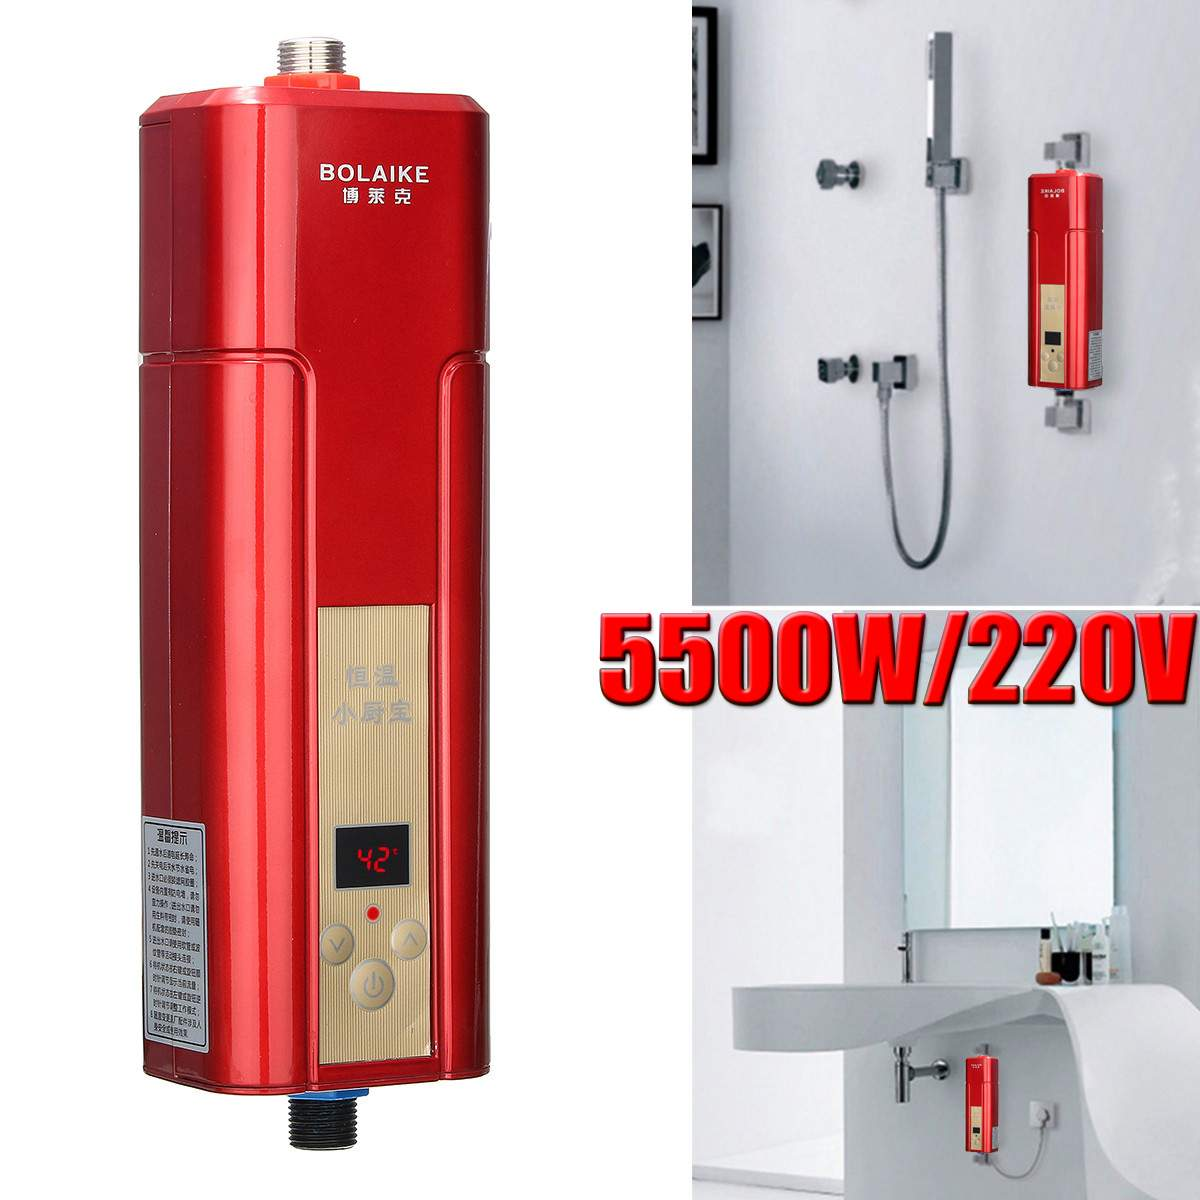 220V 5500W Electric Tankless Water Heater Instant Shower ABS Household Water Heater For Indoor Kitchen Bathroom Water Heater